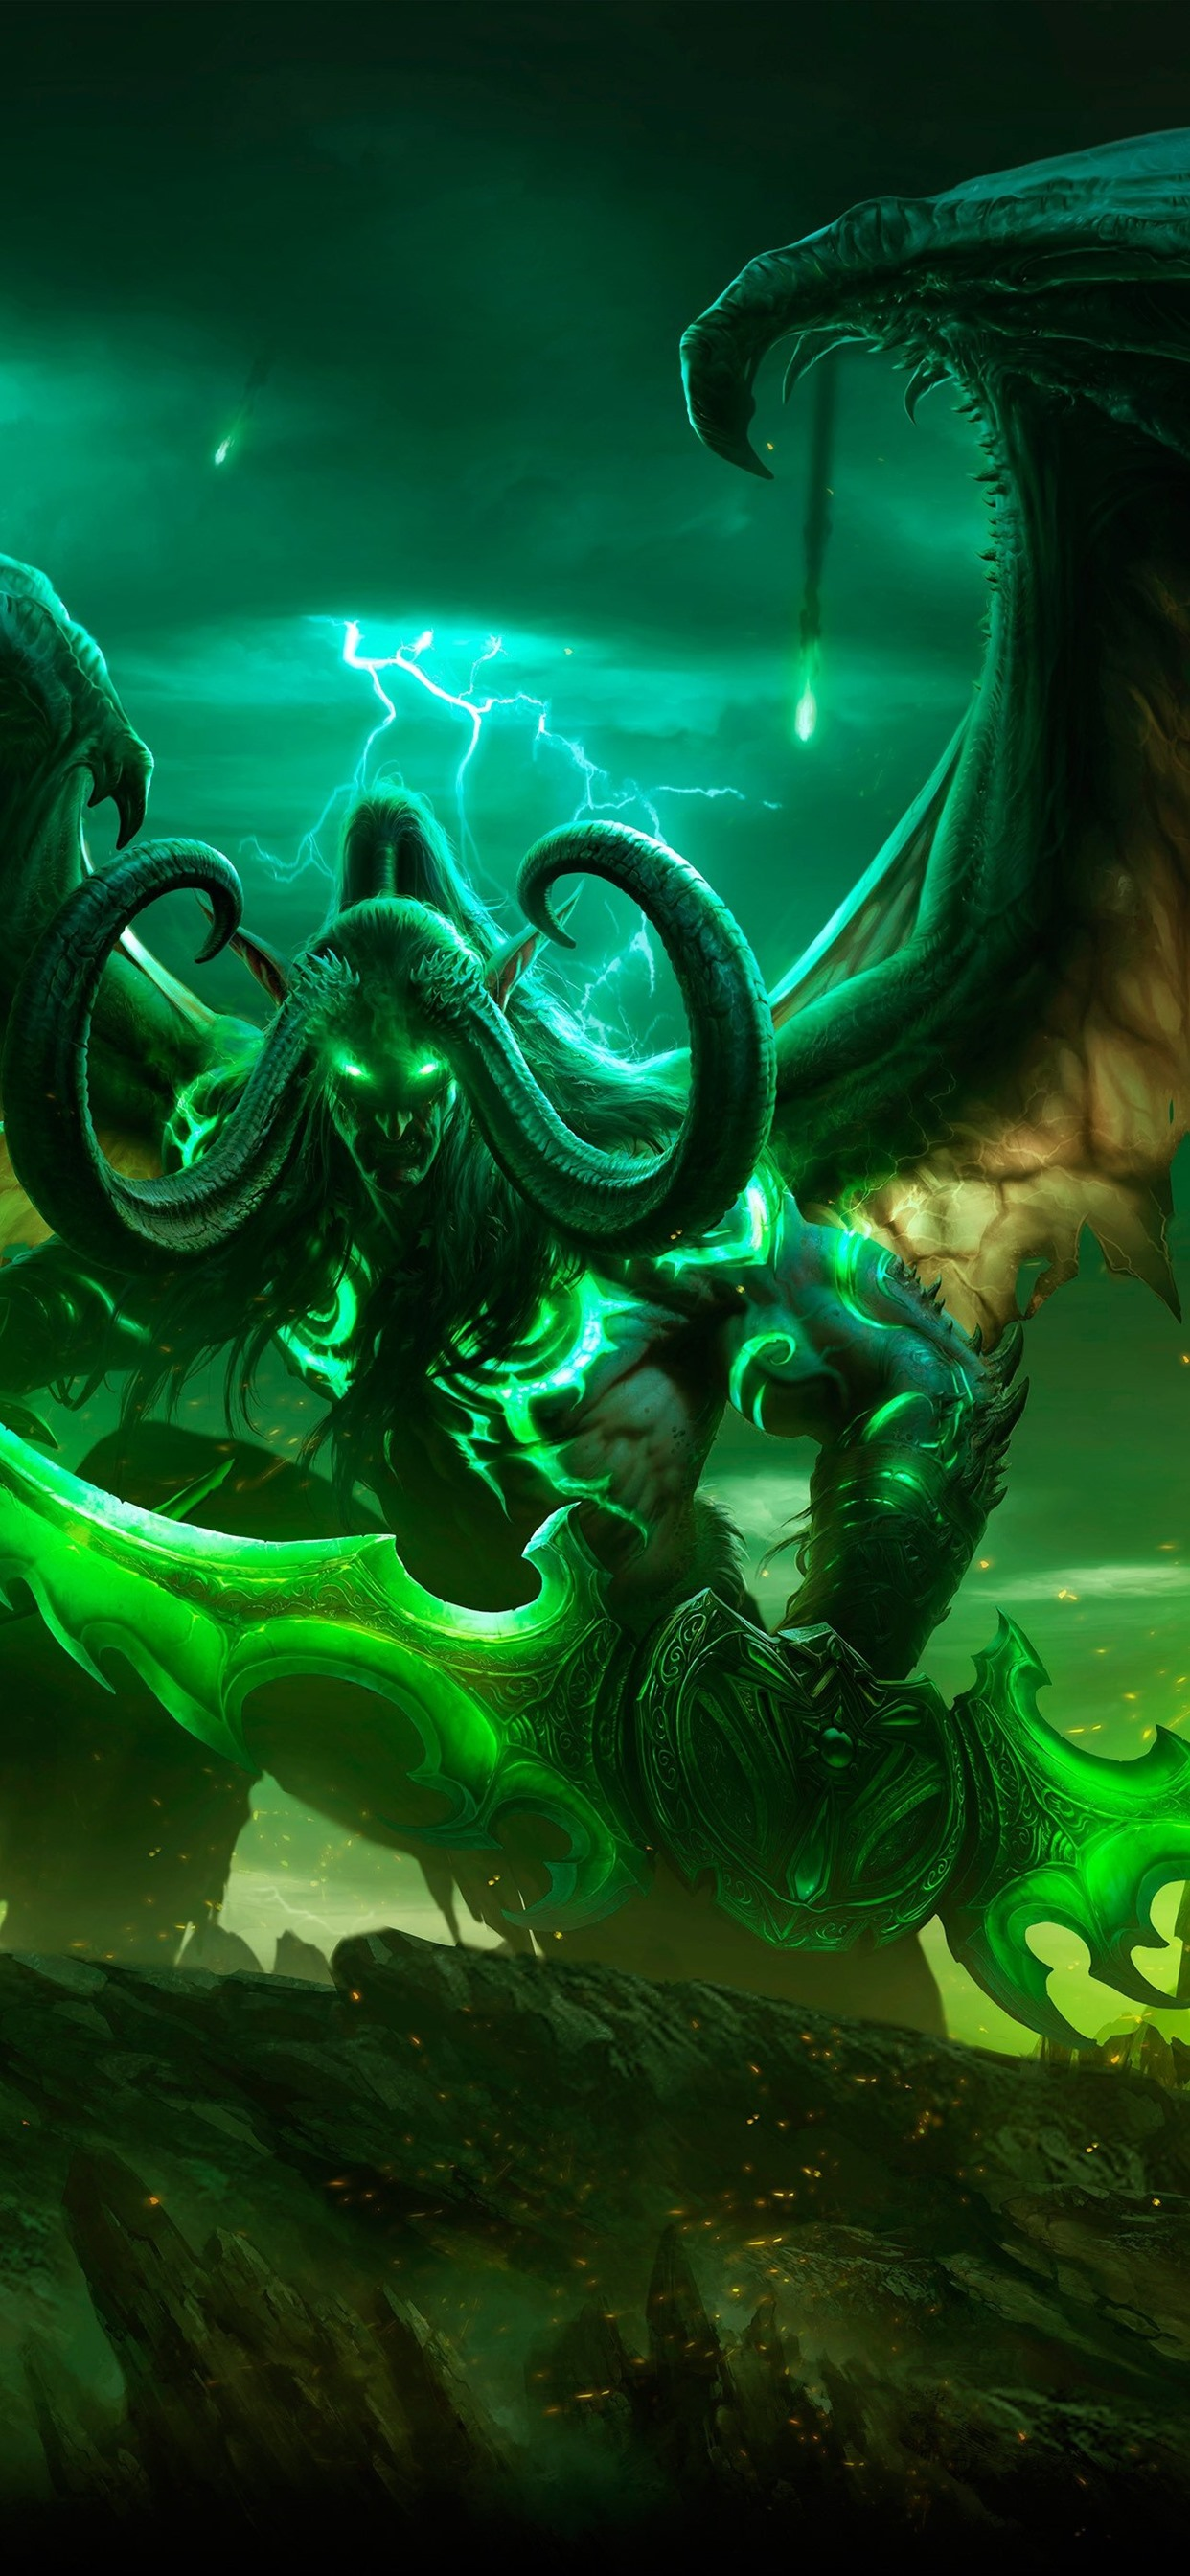 World Of Warcraft Horns Wings Game Art Picture 1242x2688 Iphone